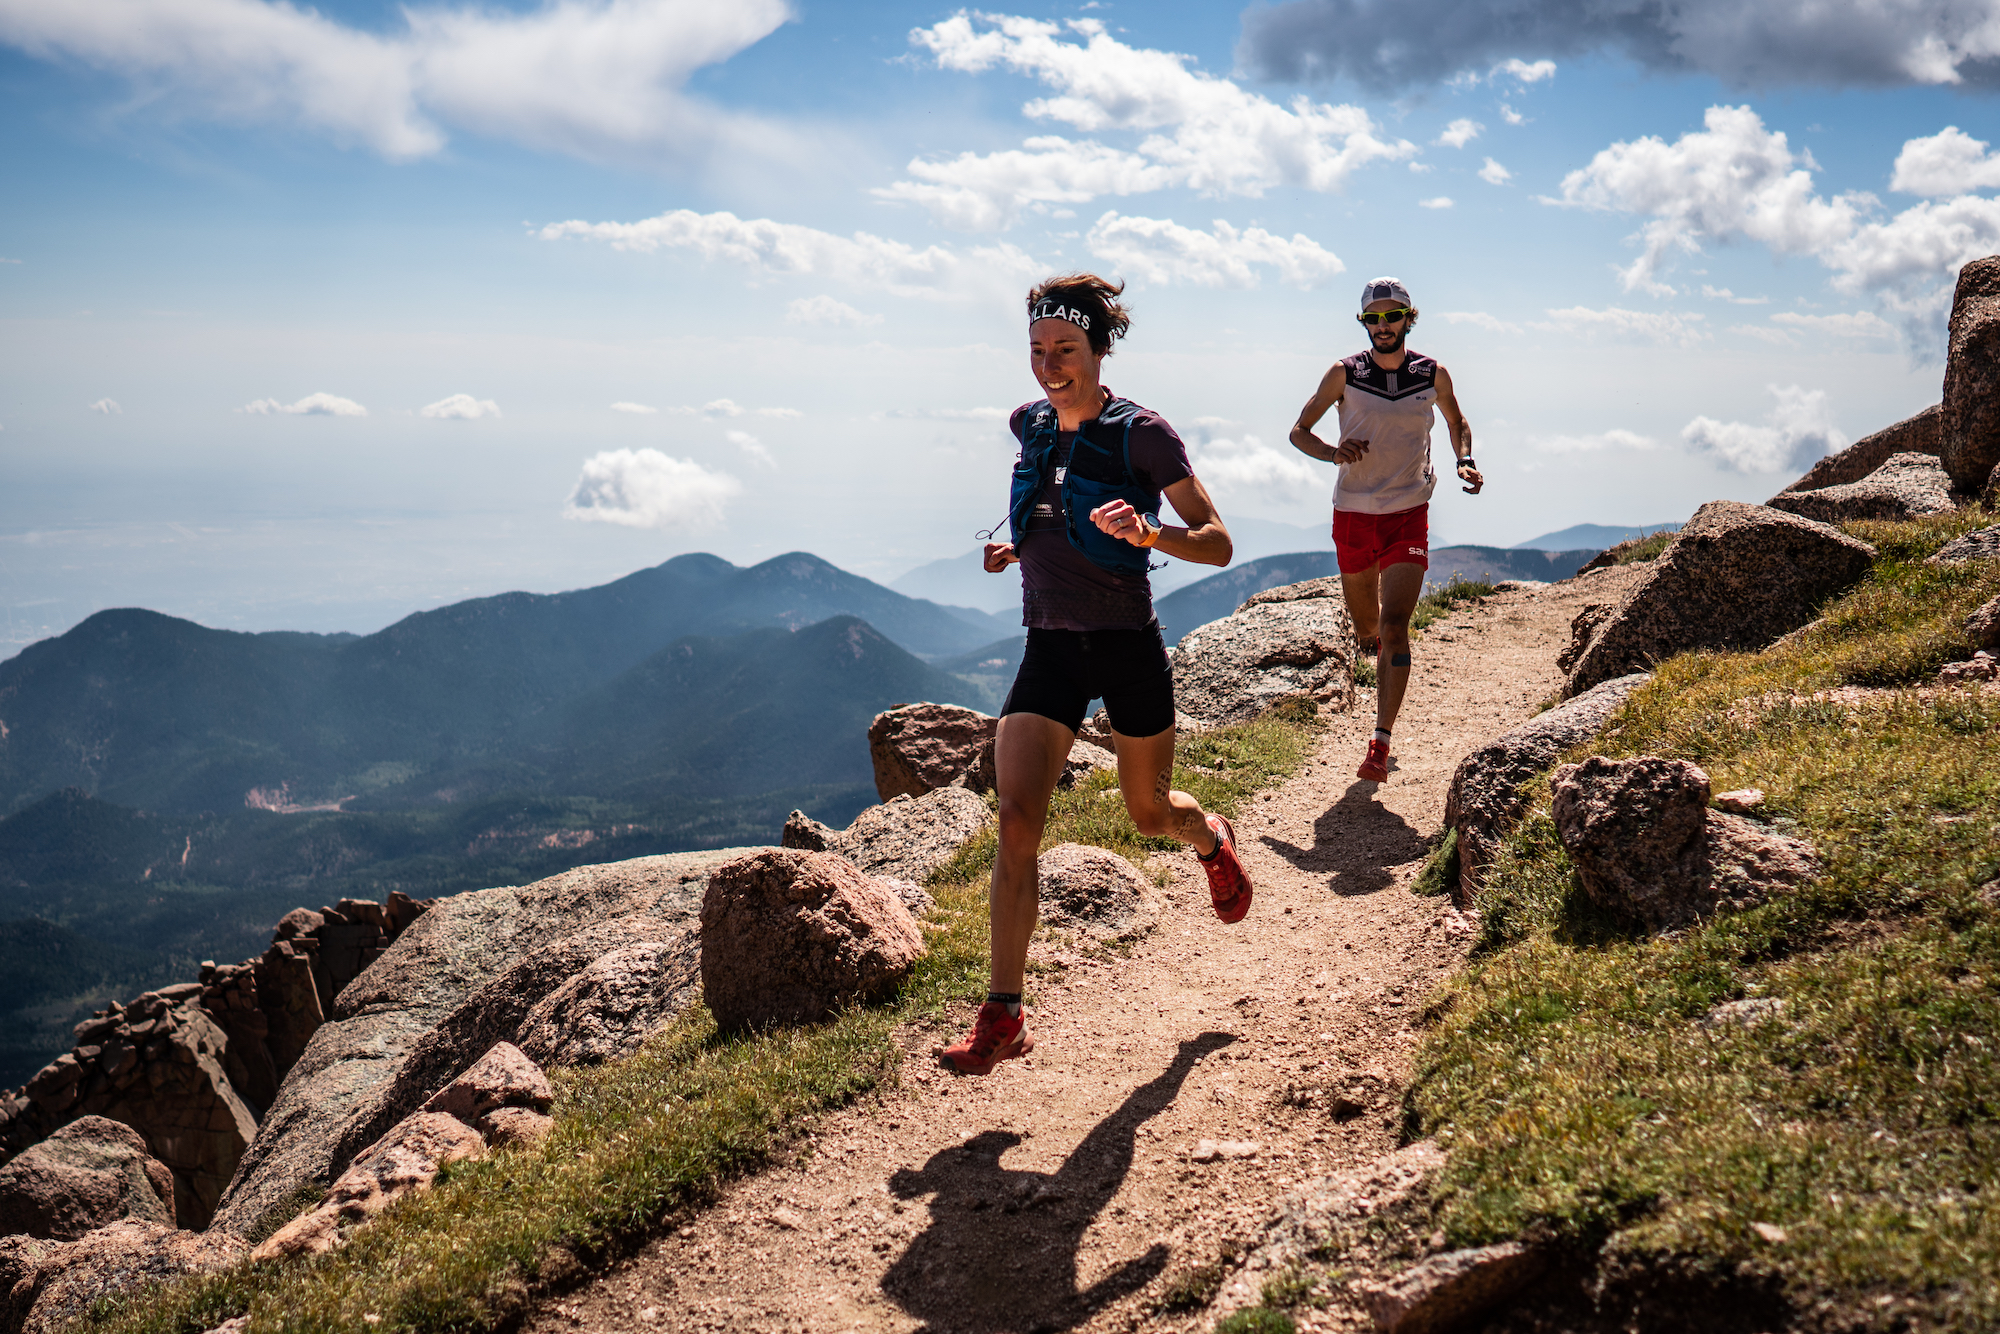 Salomon athletes to head to the Canary Islands to develop new gear